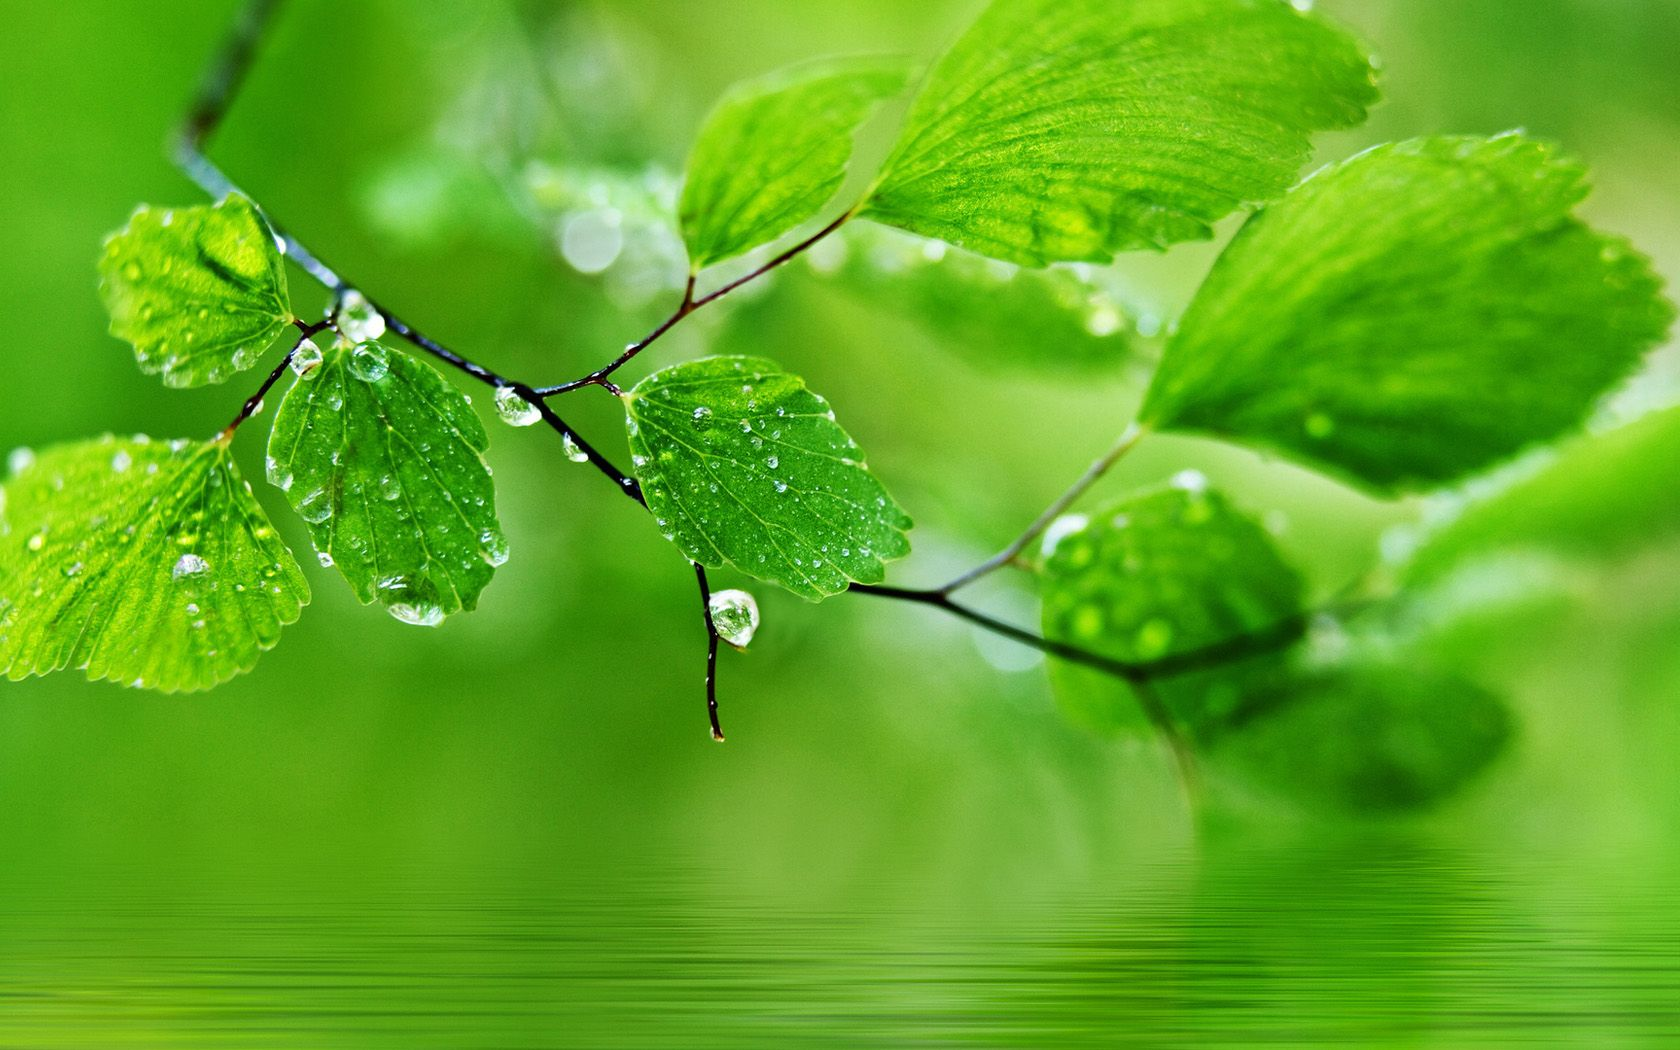 beauty green natural wallpapers hd - http://wallawy/beauty-green